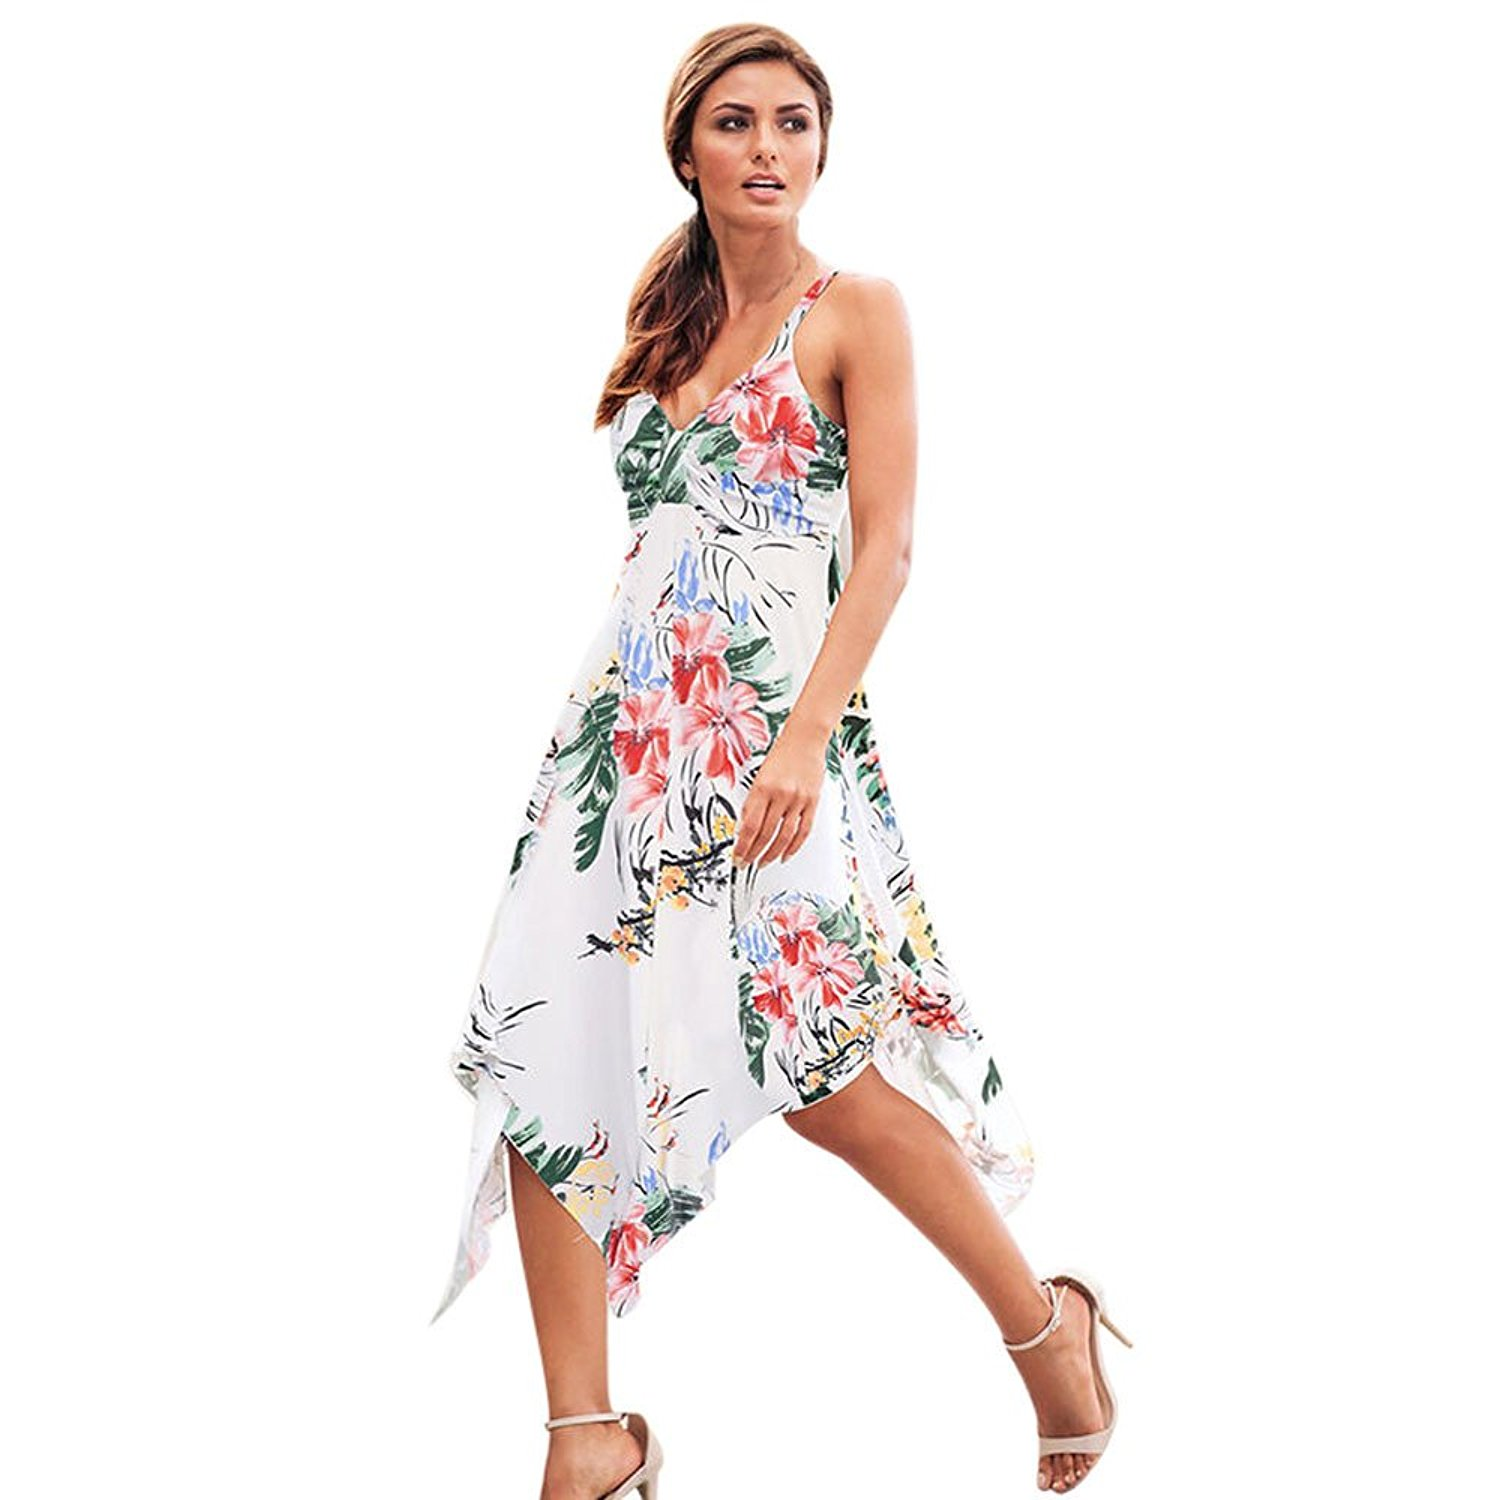 07b09da0b4 Get Quotations · ❤Women Summer Dress,Todaies Women Summer Floral Dress  Party Holiday Beach Sundress Long Dress